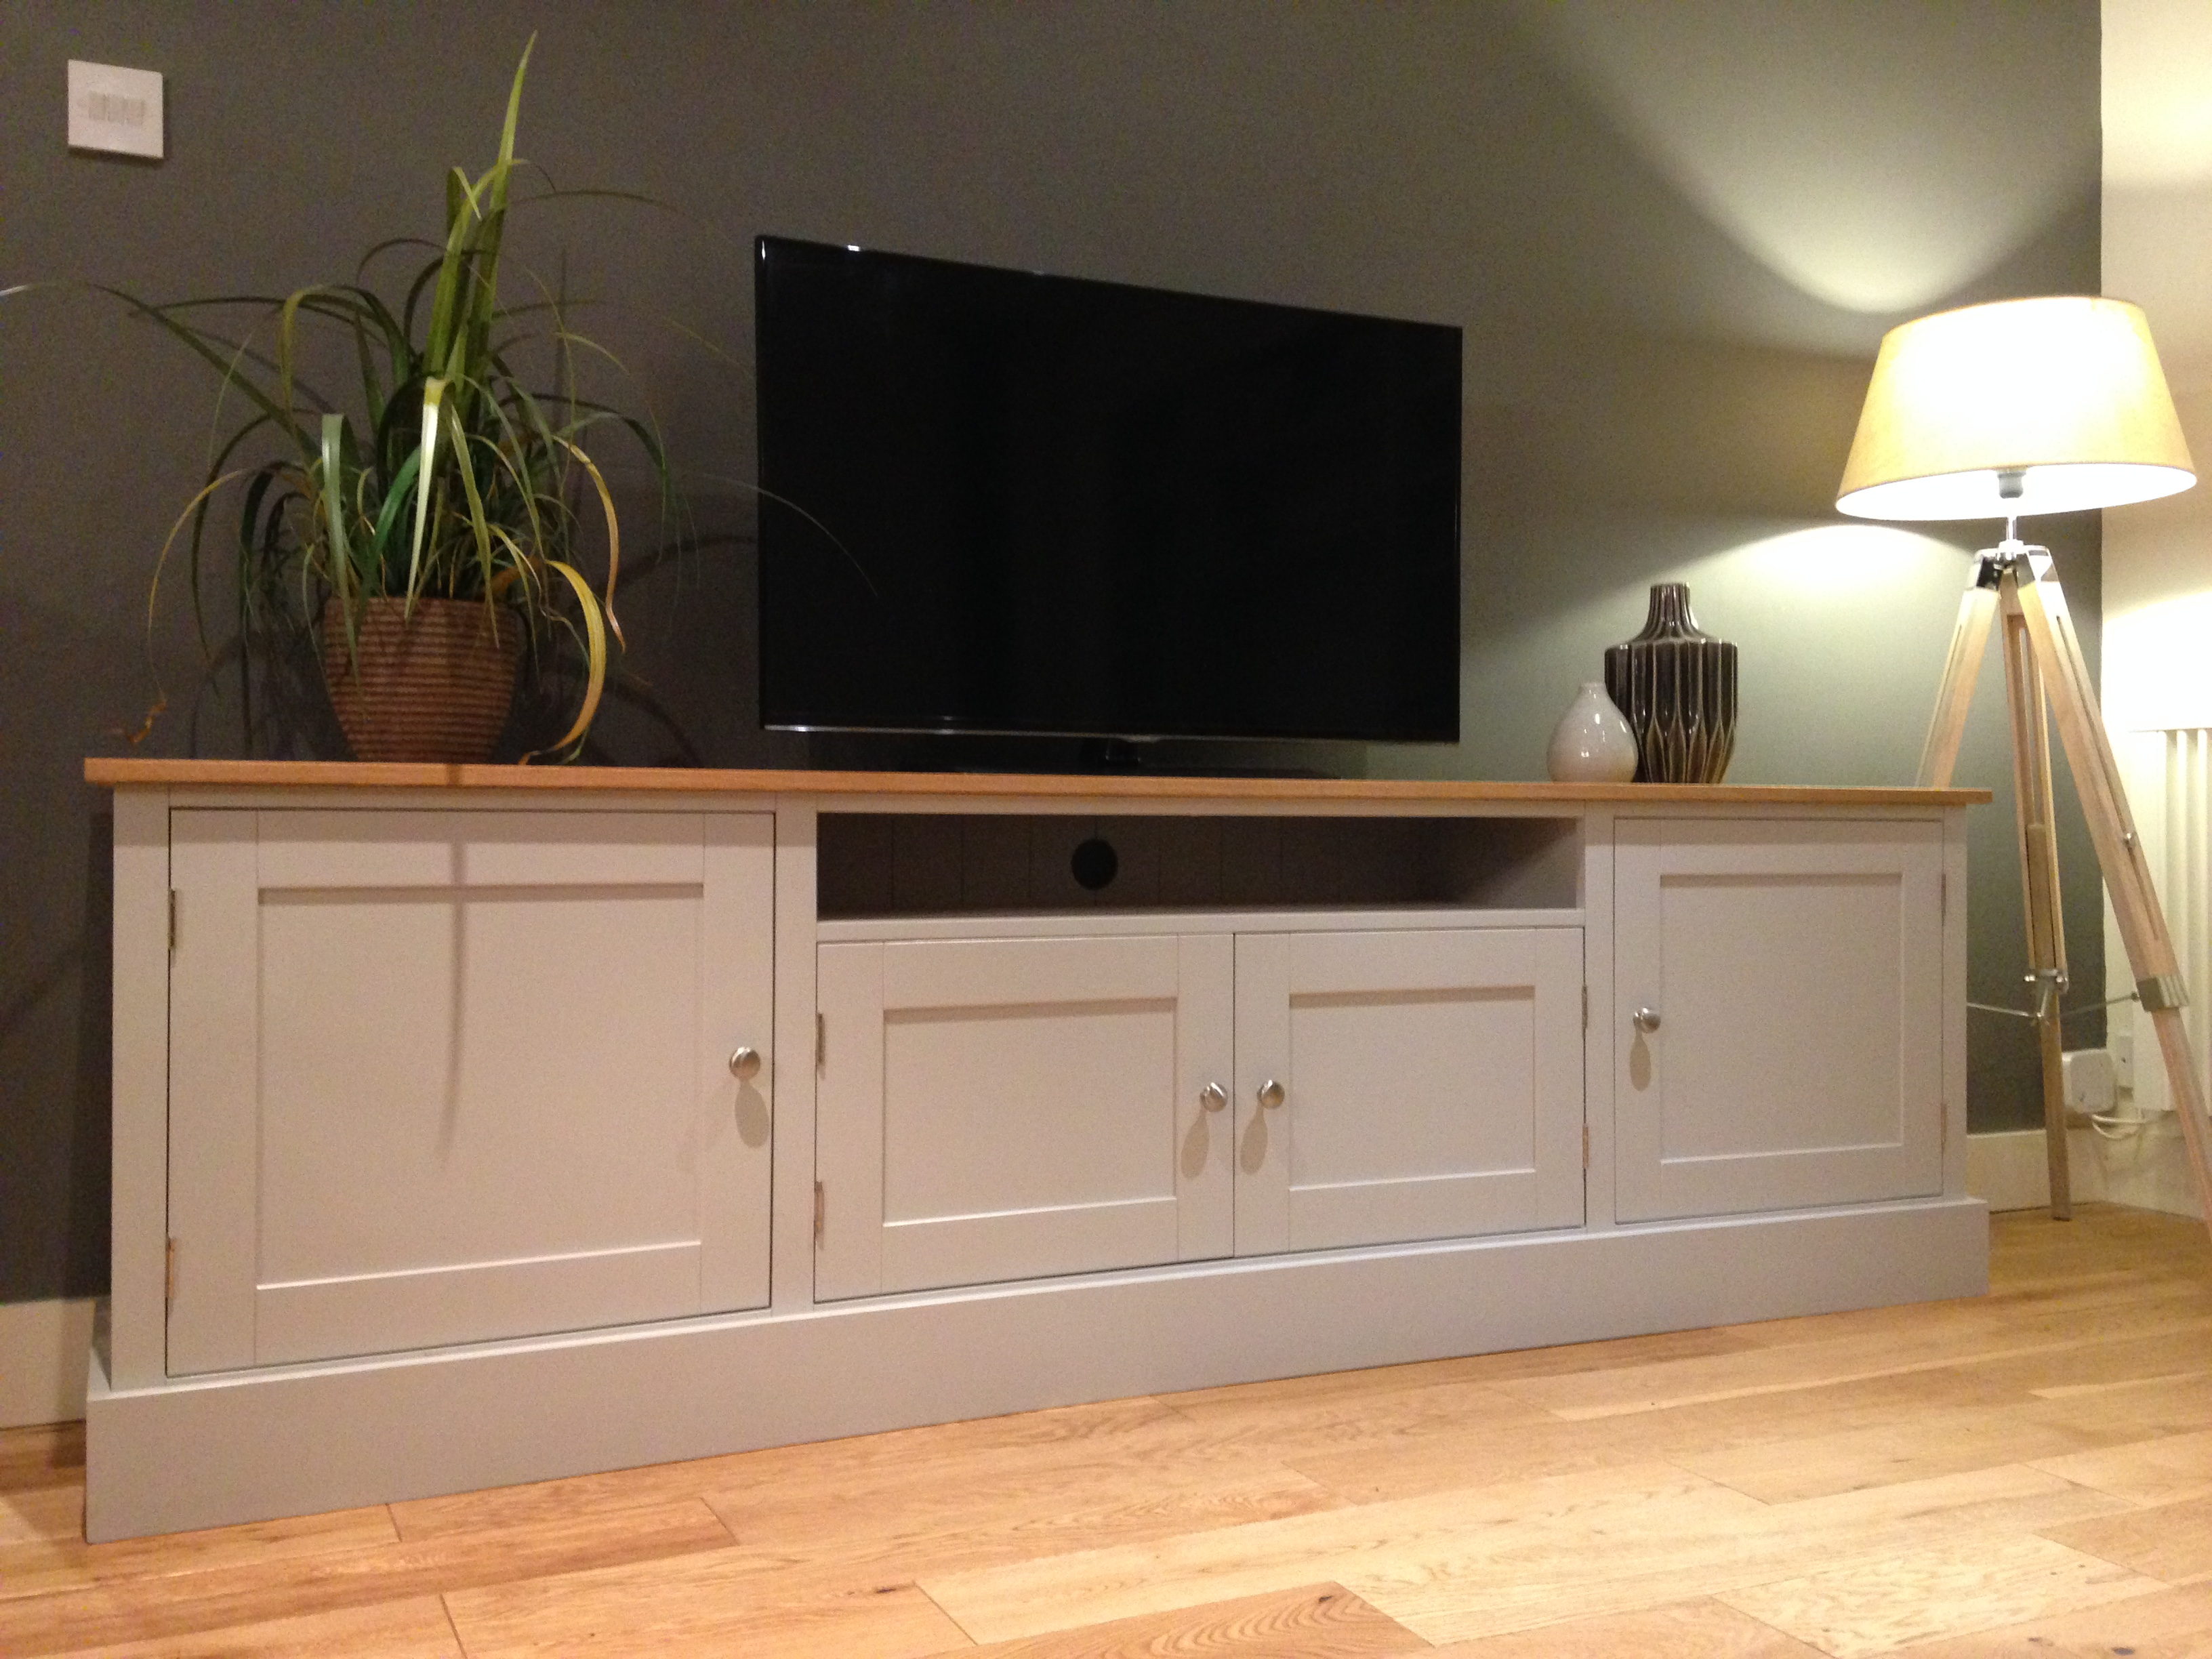 7FT SOLID PINE & OAK TV UNIT - NEST AT NUMBER 20